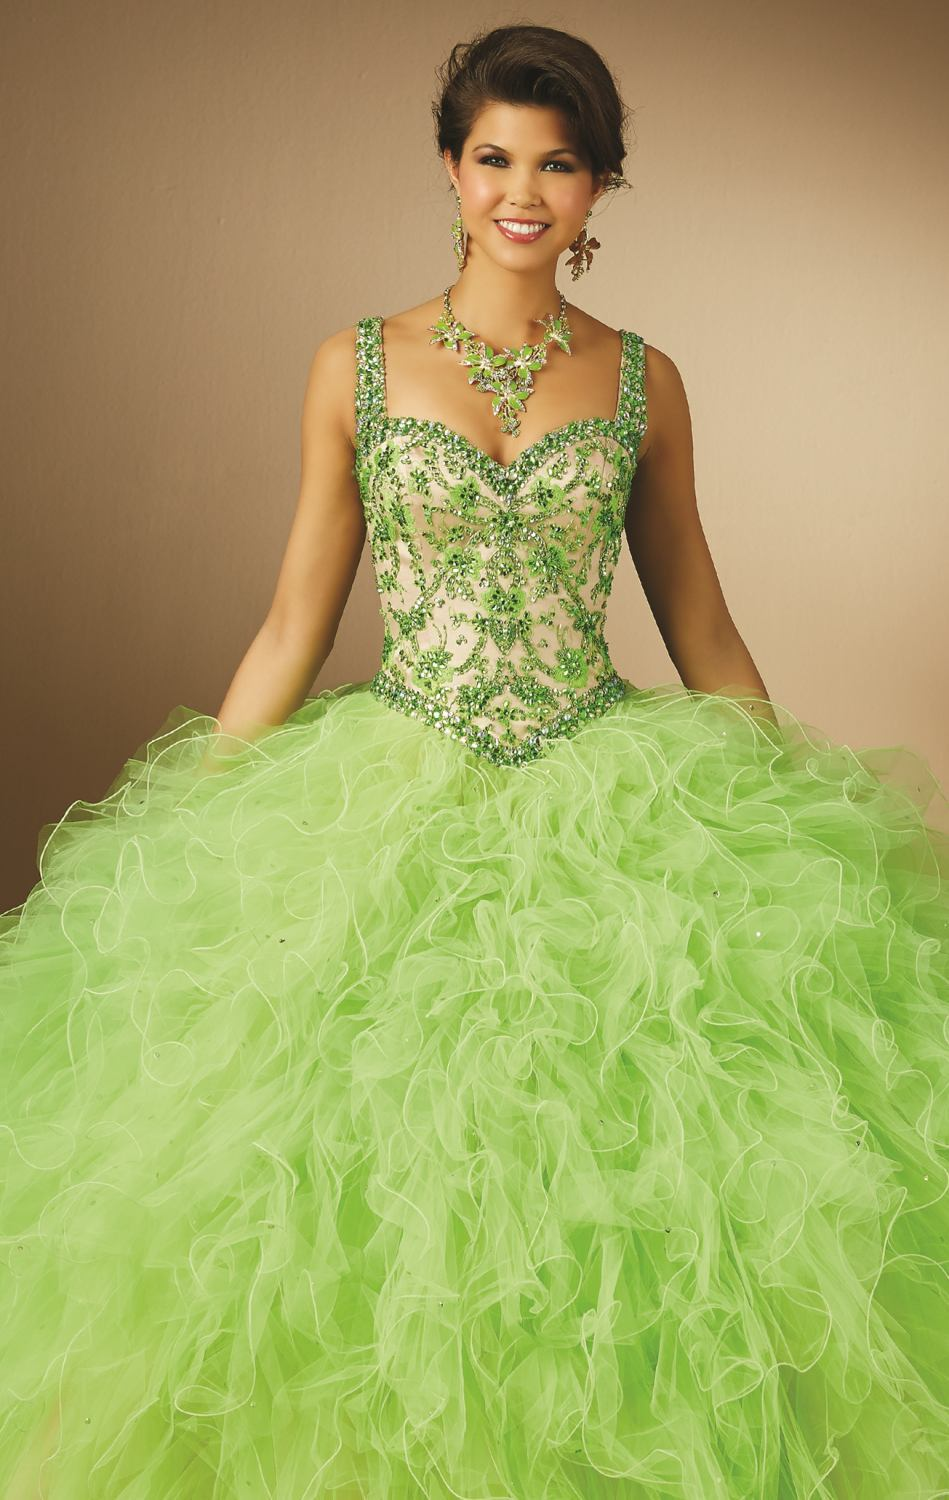 9933187b71b Lime Green Fuchsia Coral 2015 Quinceanera Dresses With Corset Back Design  Ruffles Embroidery Beaded Double Straps Long -in Quinceanera Dresses from  Weddings ...